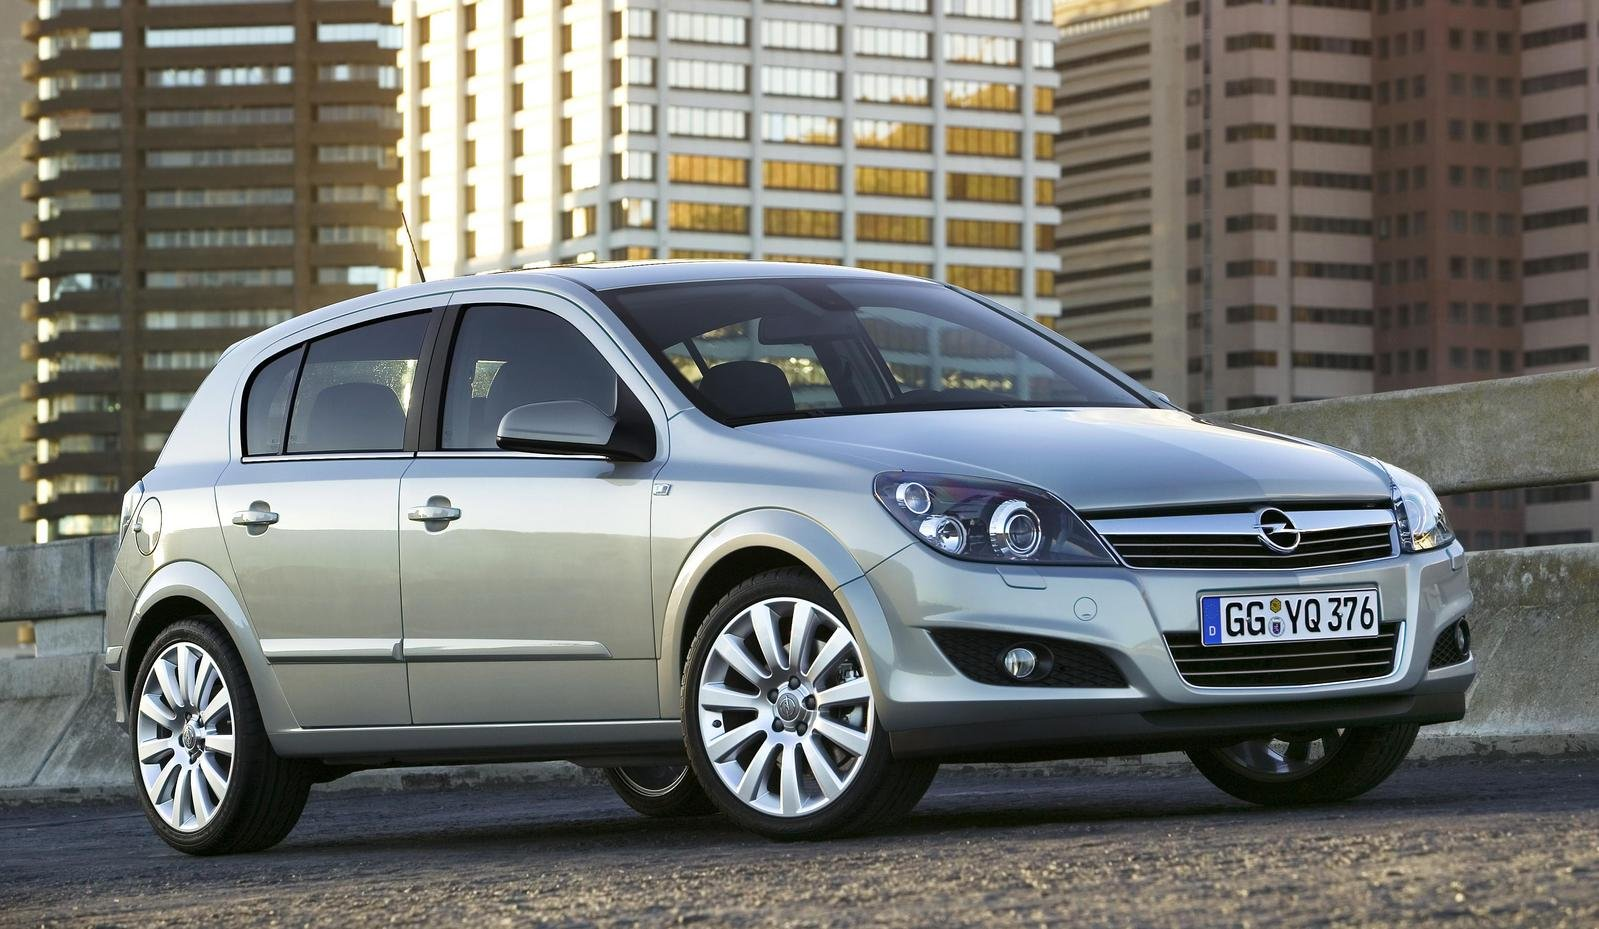 2007 opel astra sedan 1 8 related infomation specifications weili automotive network. Black Bedroom Furniture Sets. Home Design Ideas